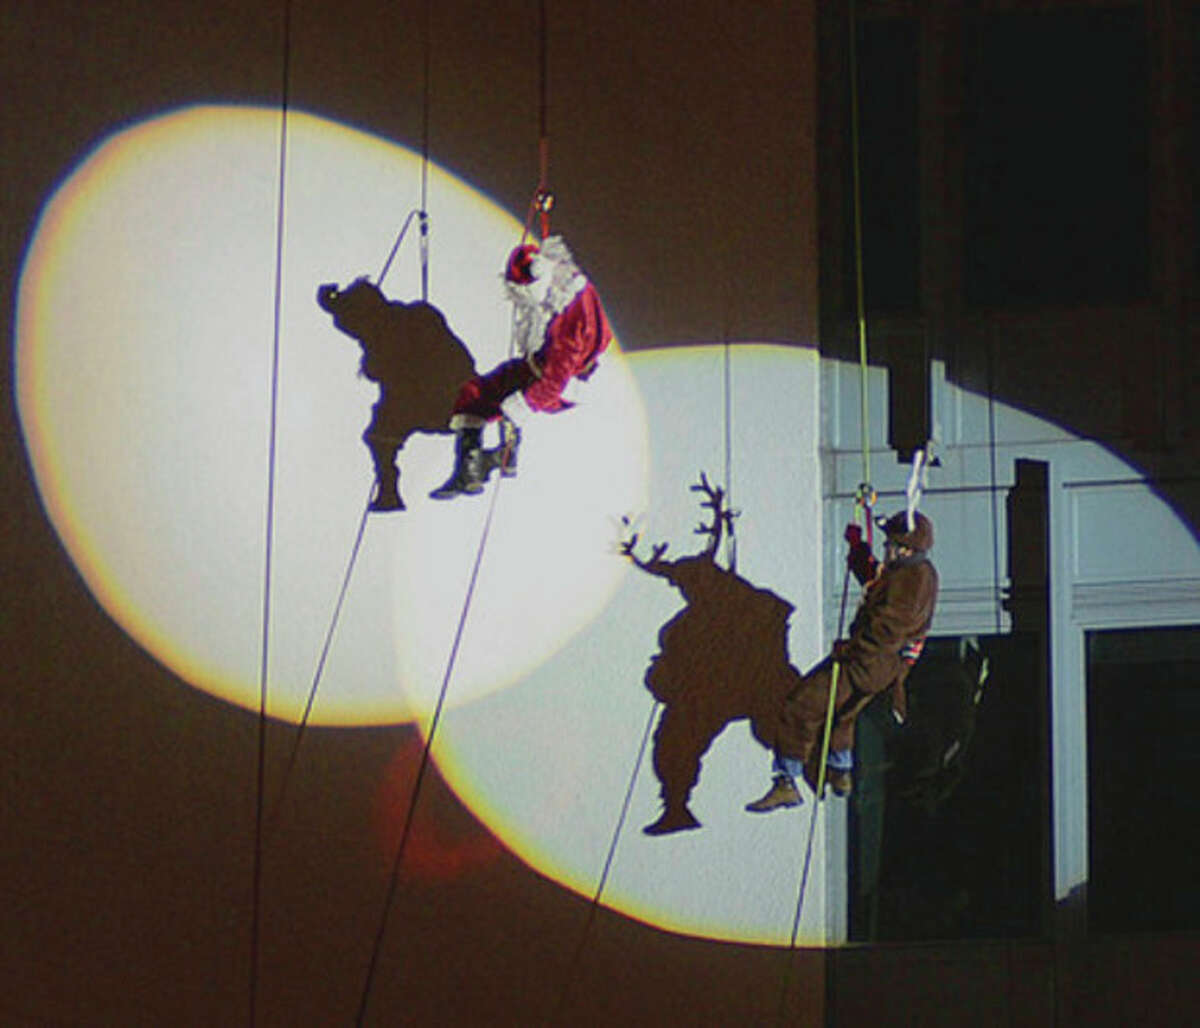 Hour photos / Harold Cobin At left, Santa Claus gestures toward the hundreds of spectators who turned out Sunday evening to watch him rappel down the side of the Landmark Square building on Broad Street. At right, Santa rappels down with his lead reindeer,